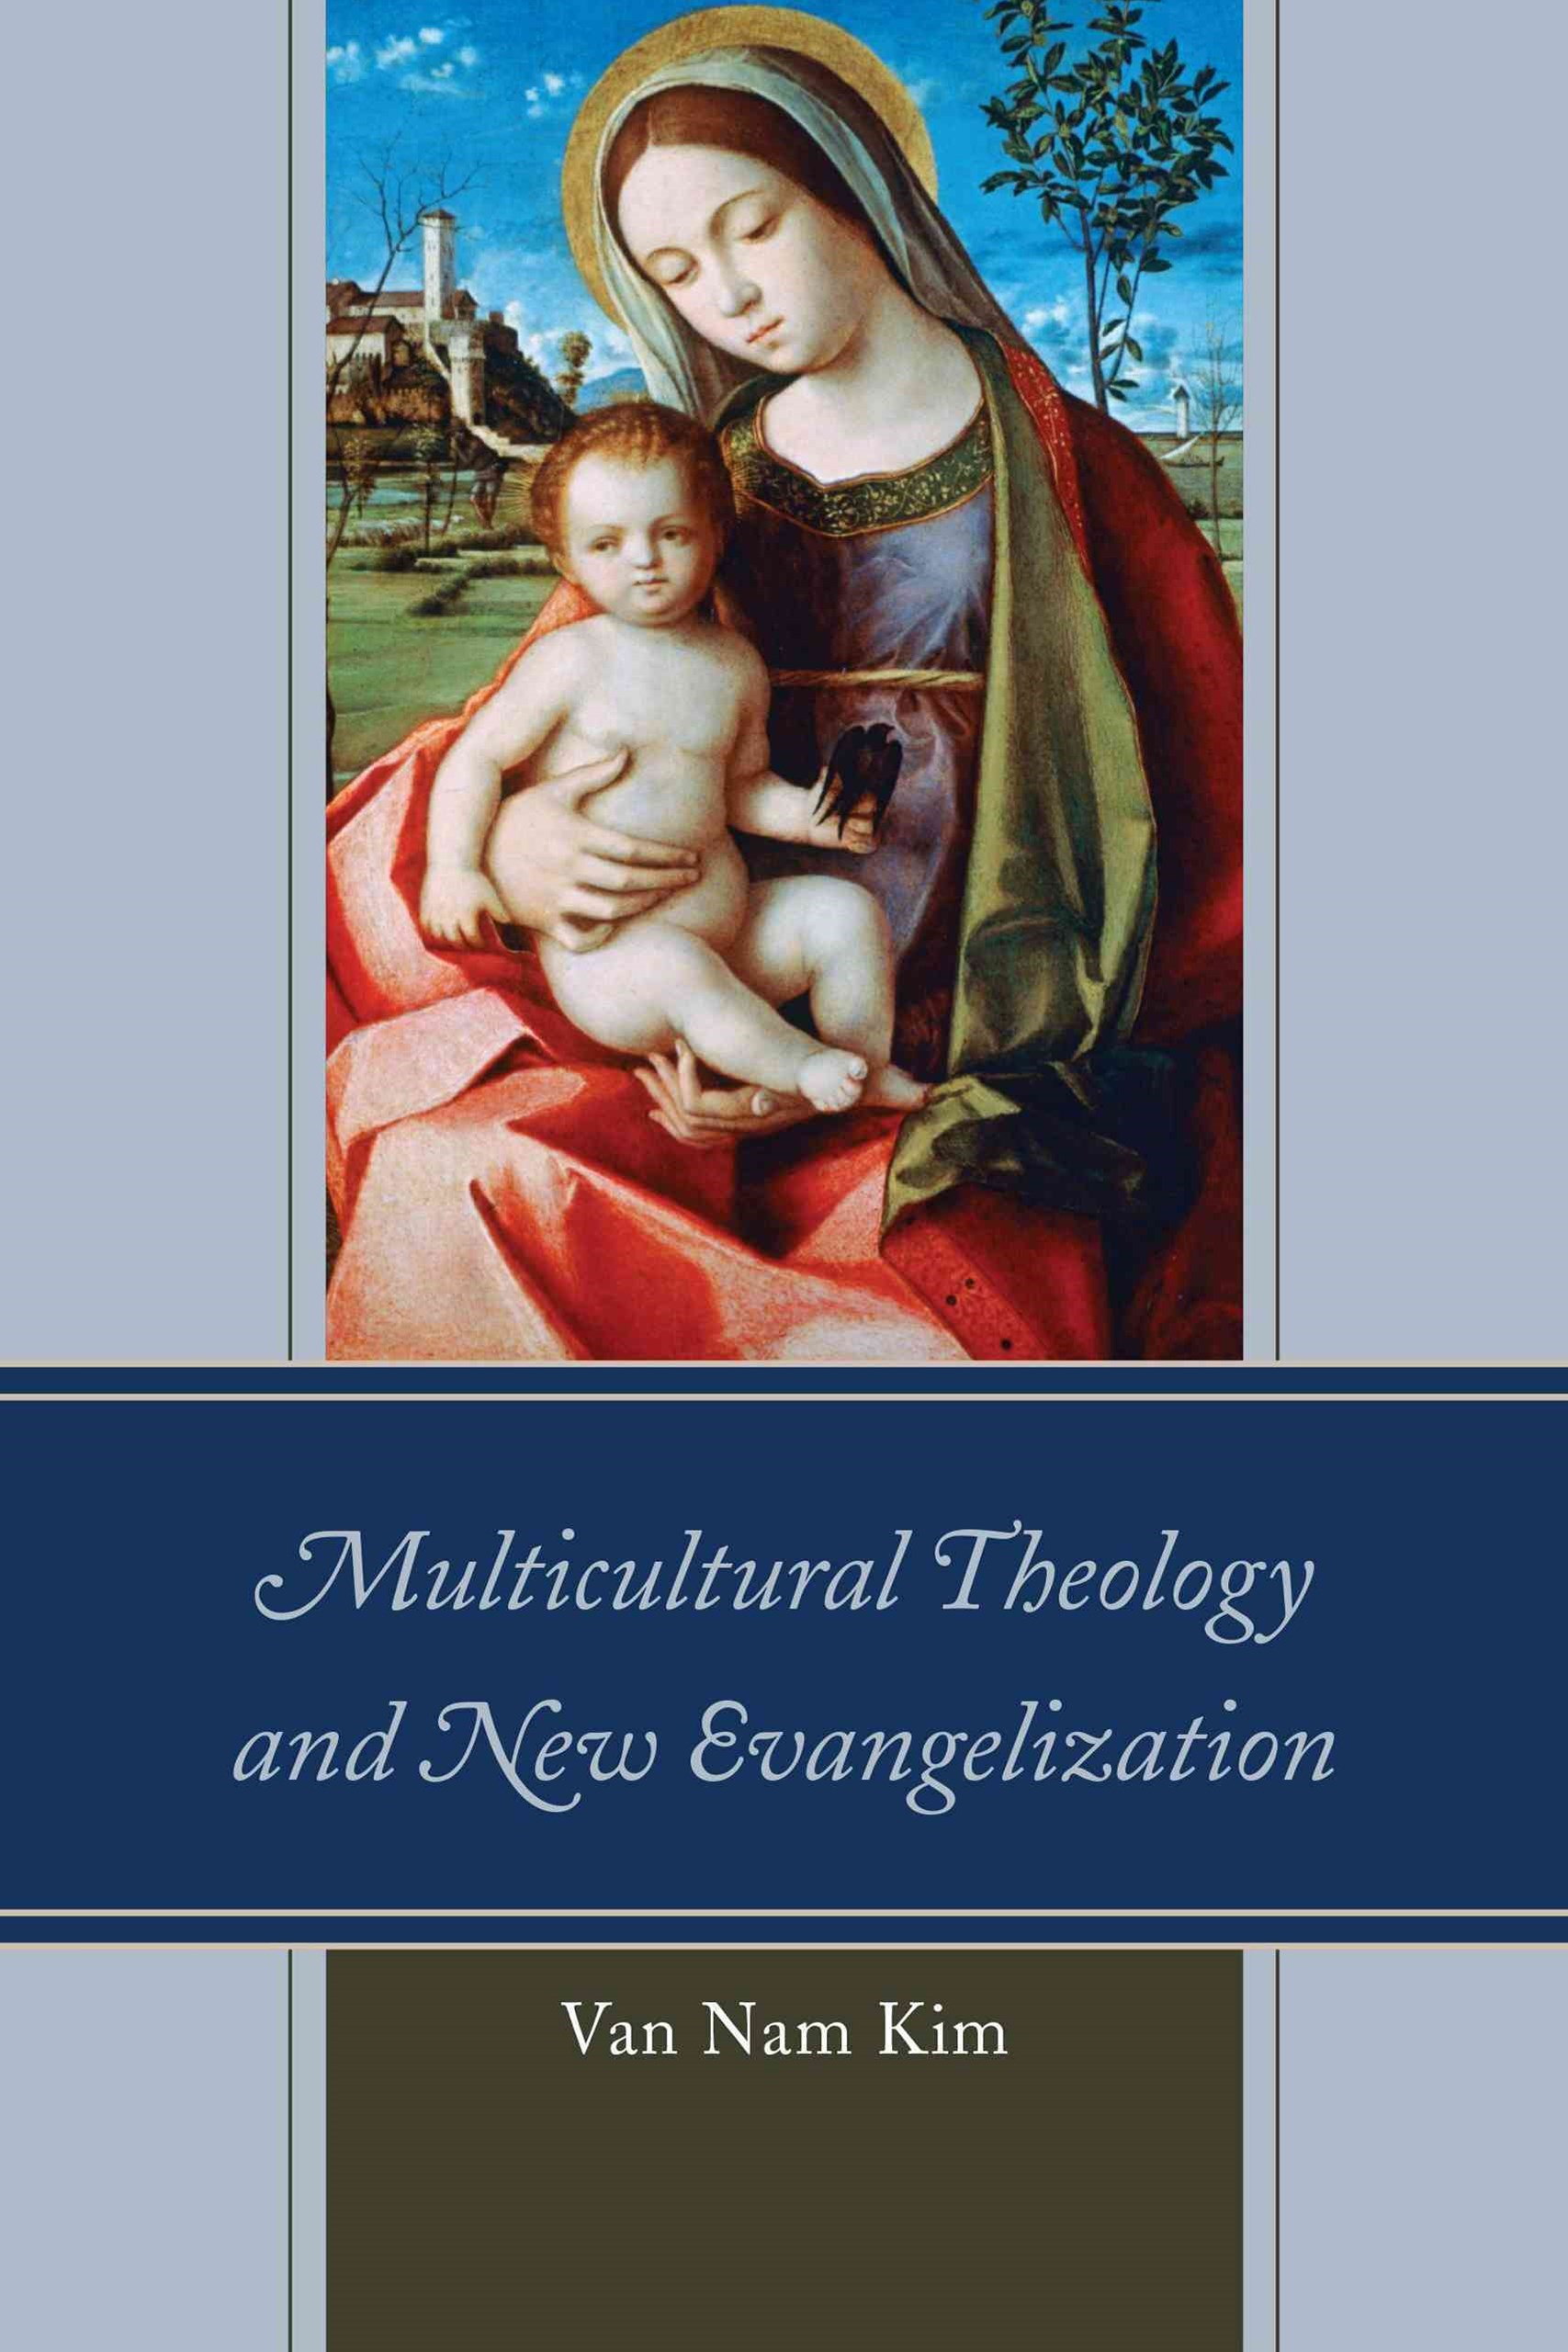 Multicultural Theology and New Evangelization